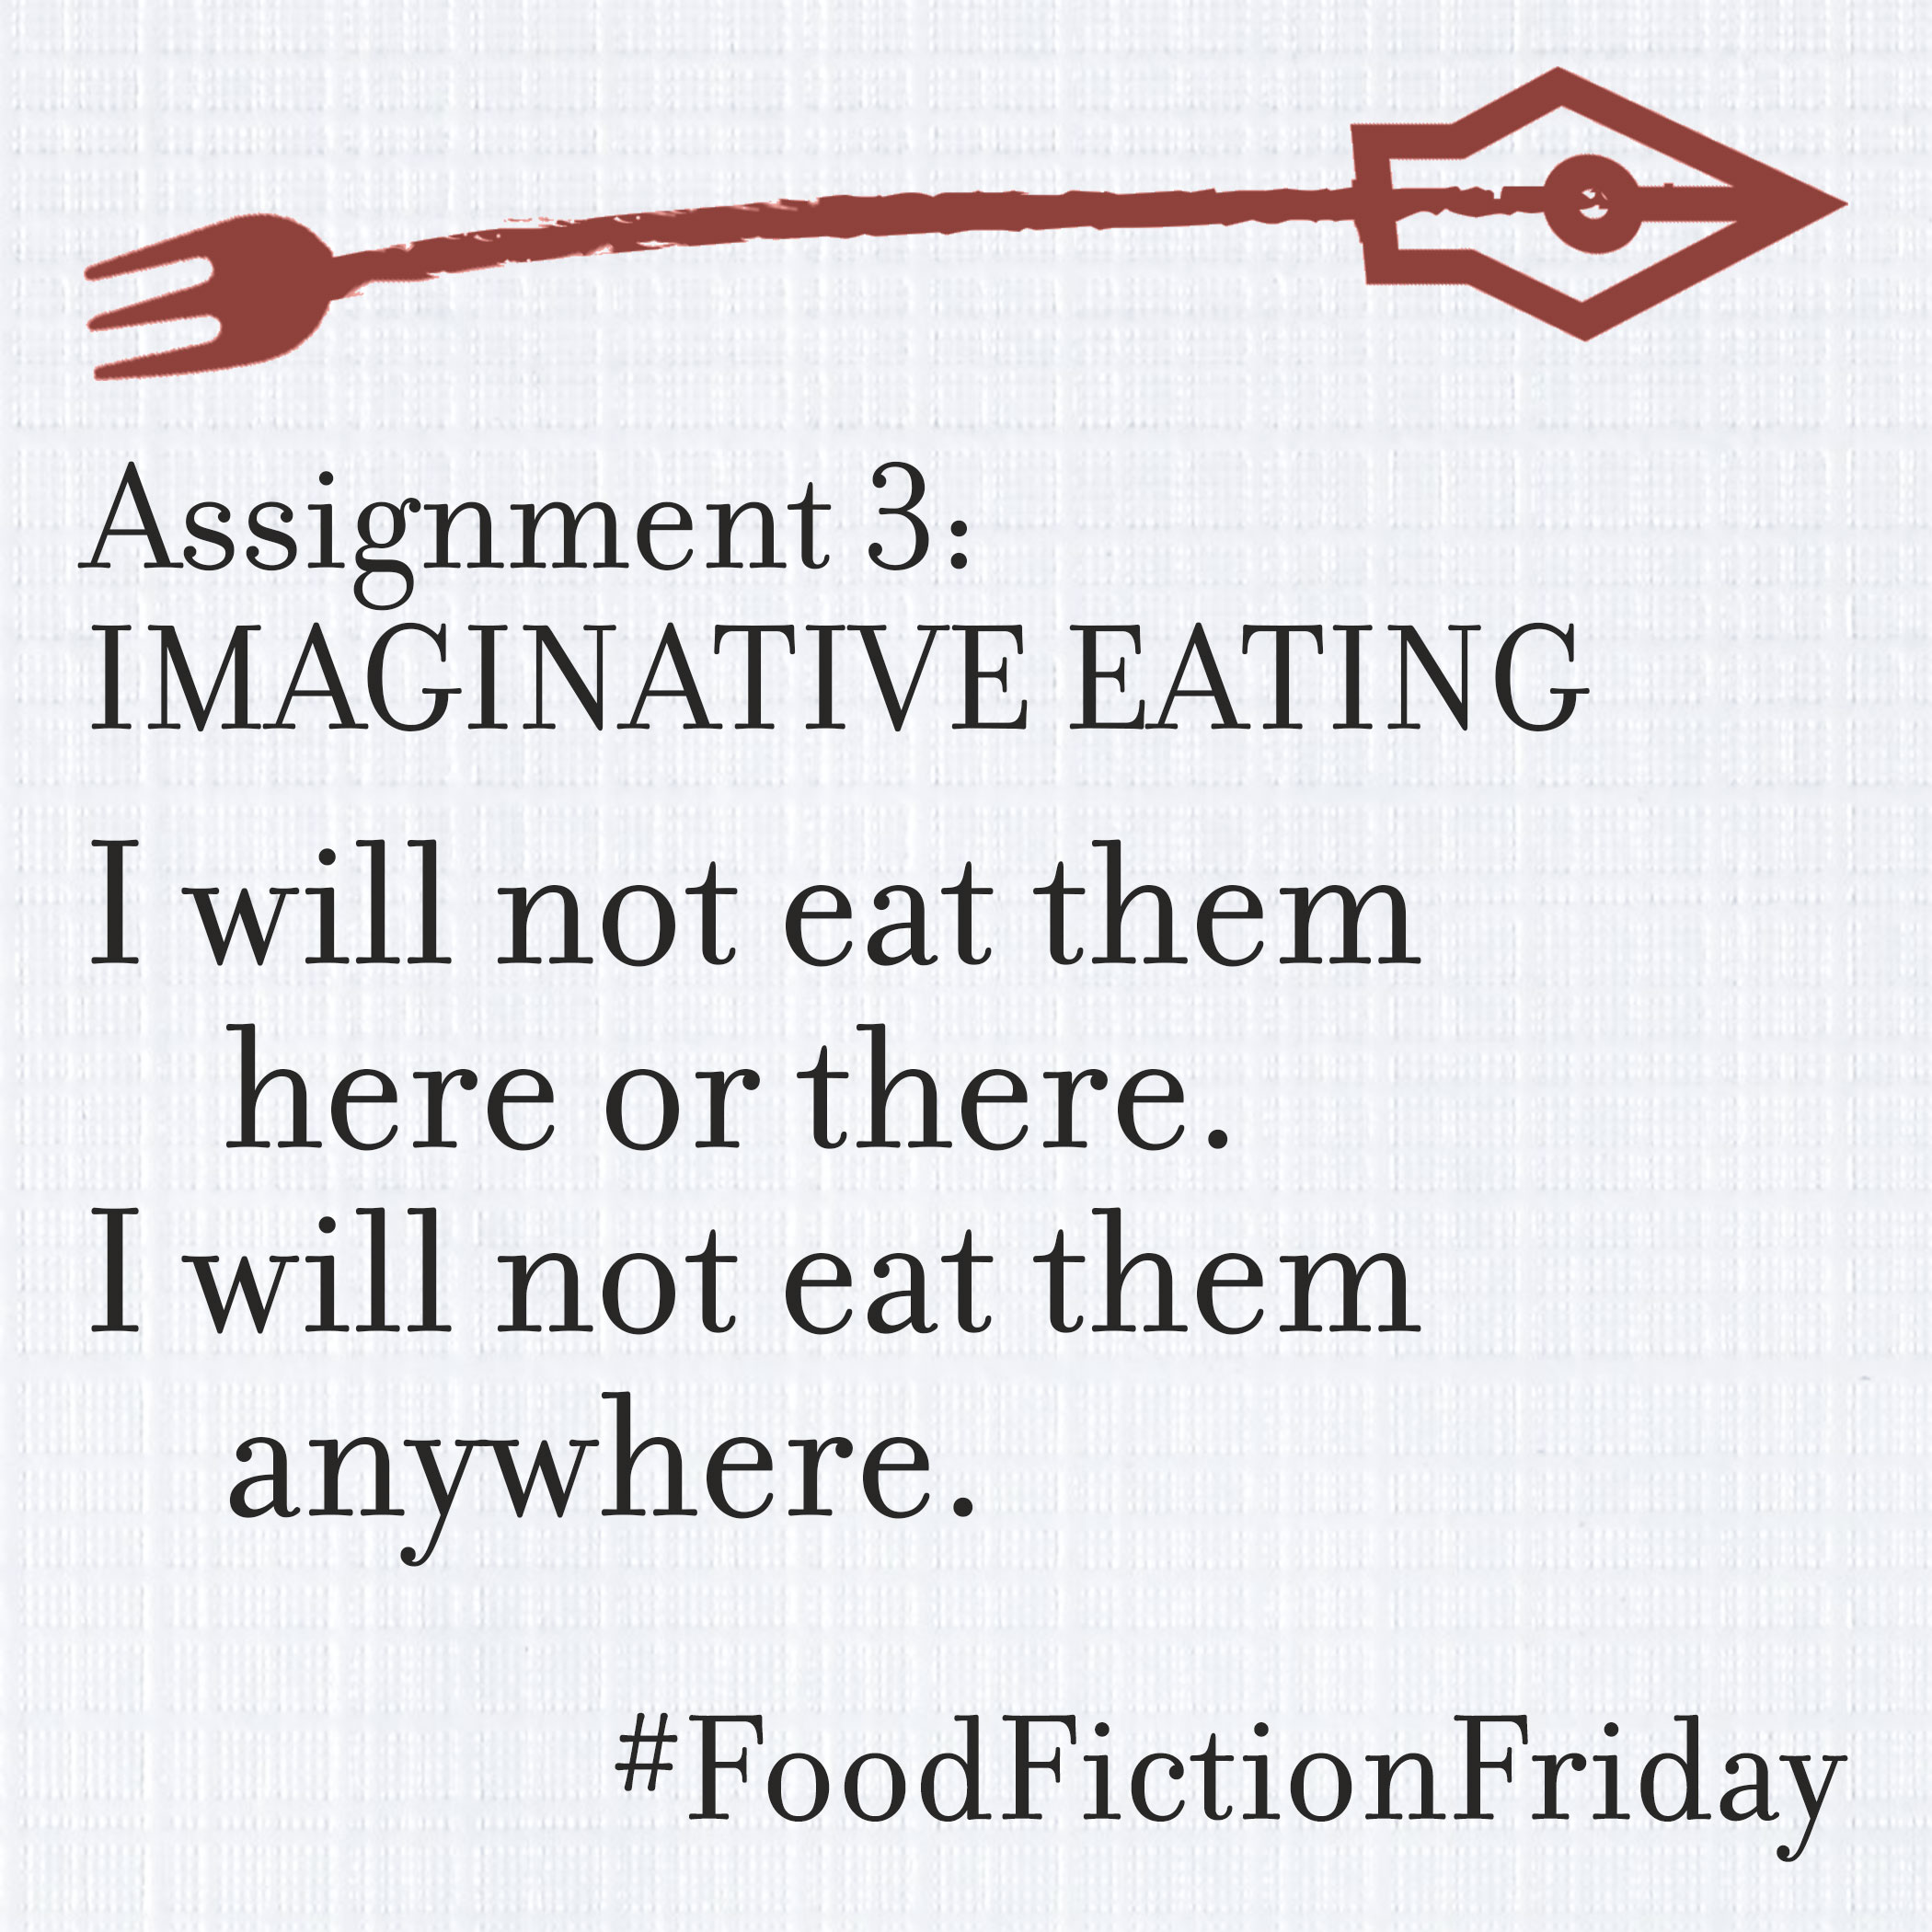 3-imaginative-eating.jpg